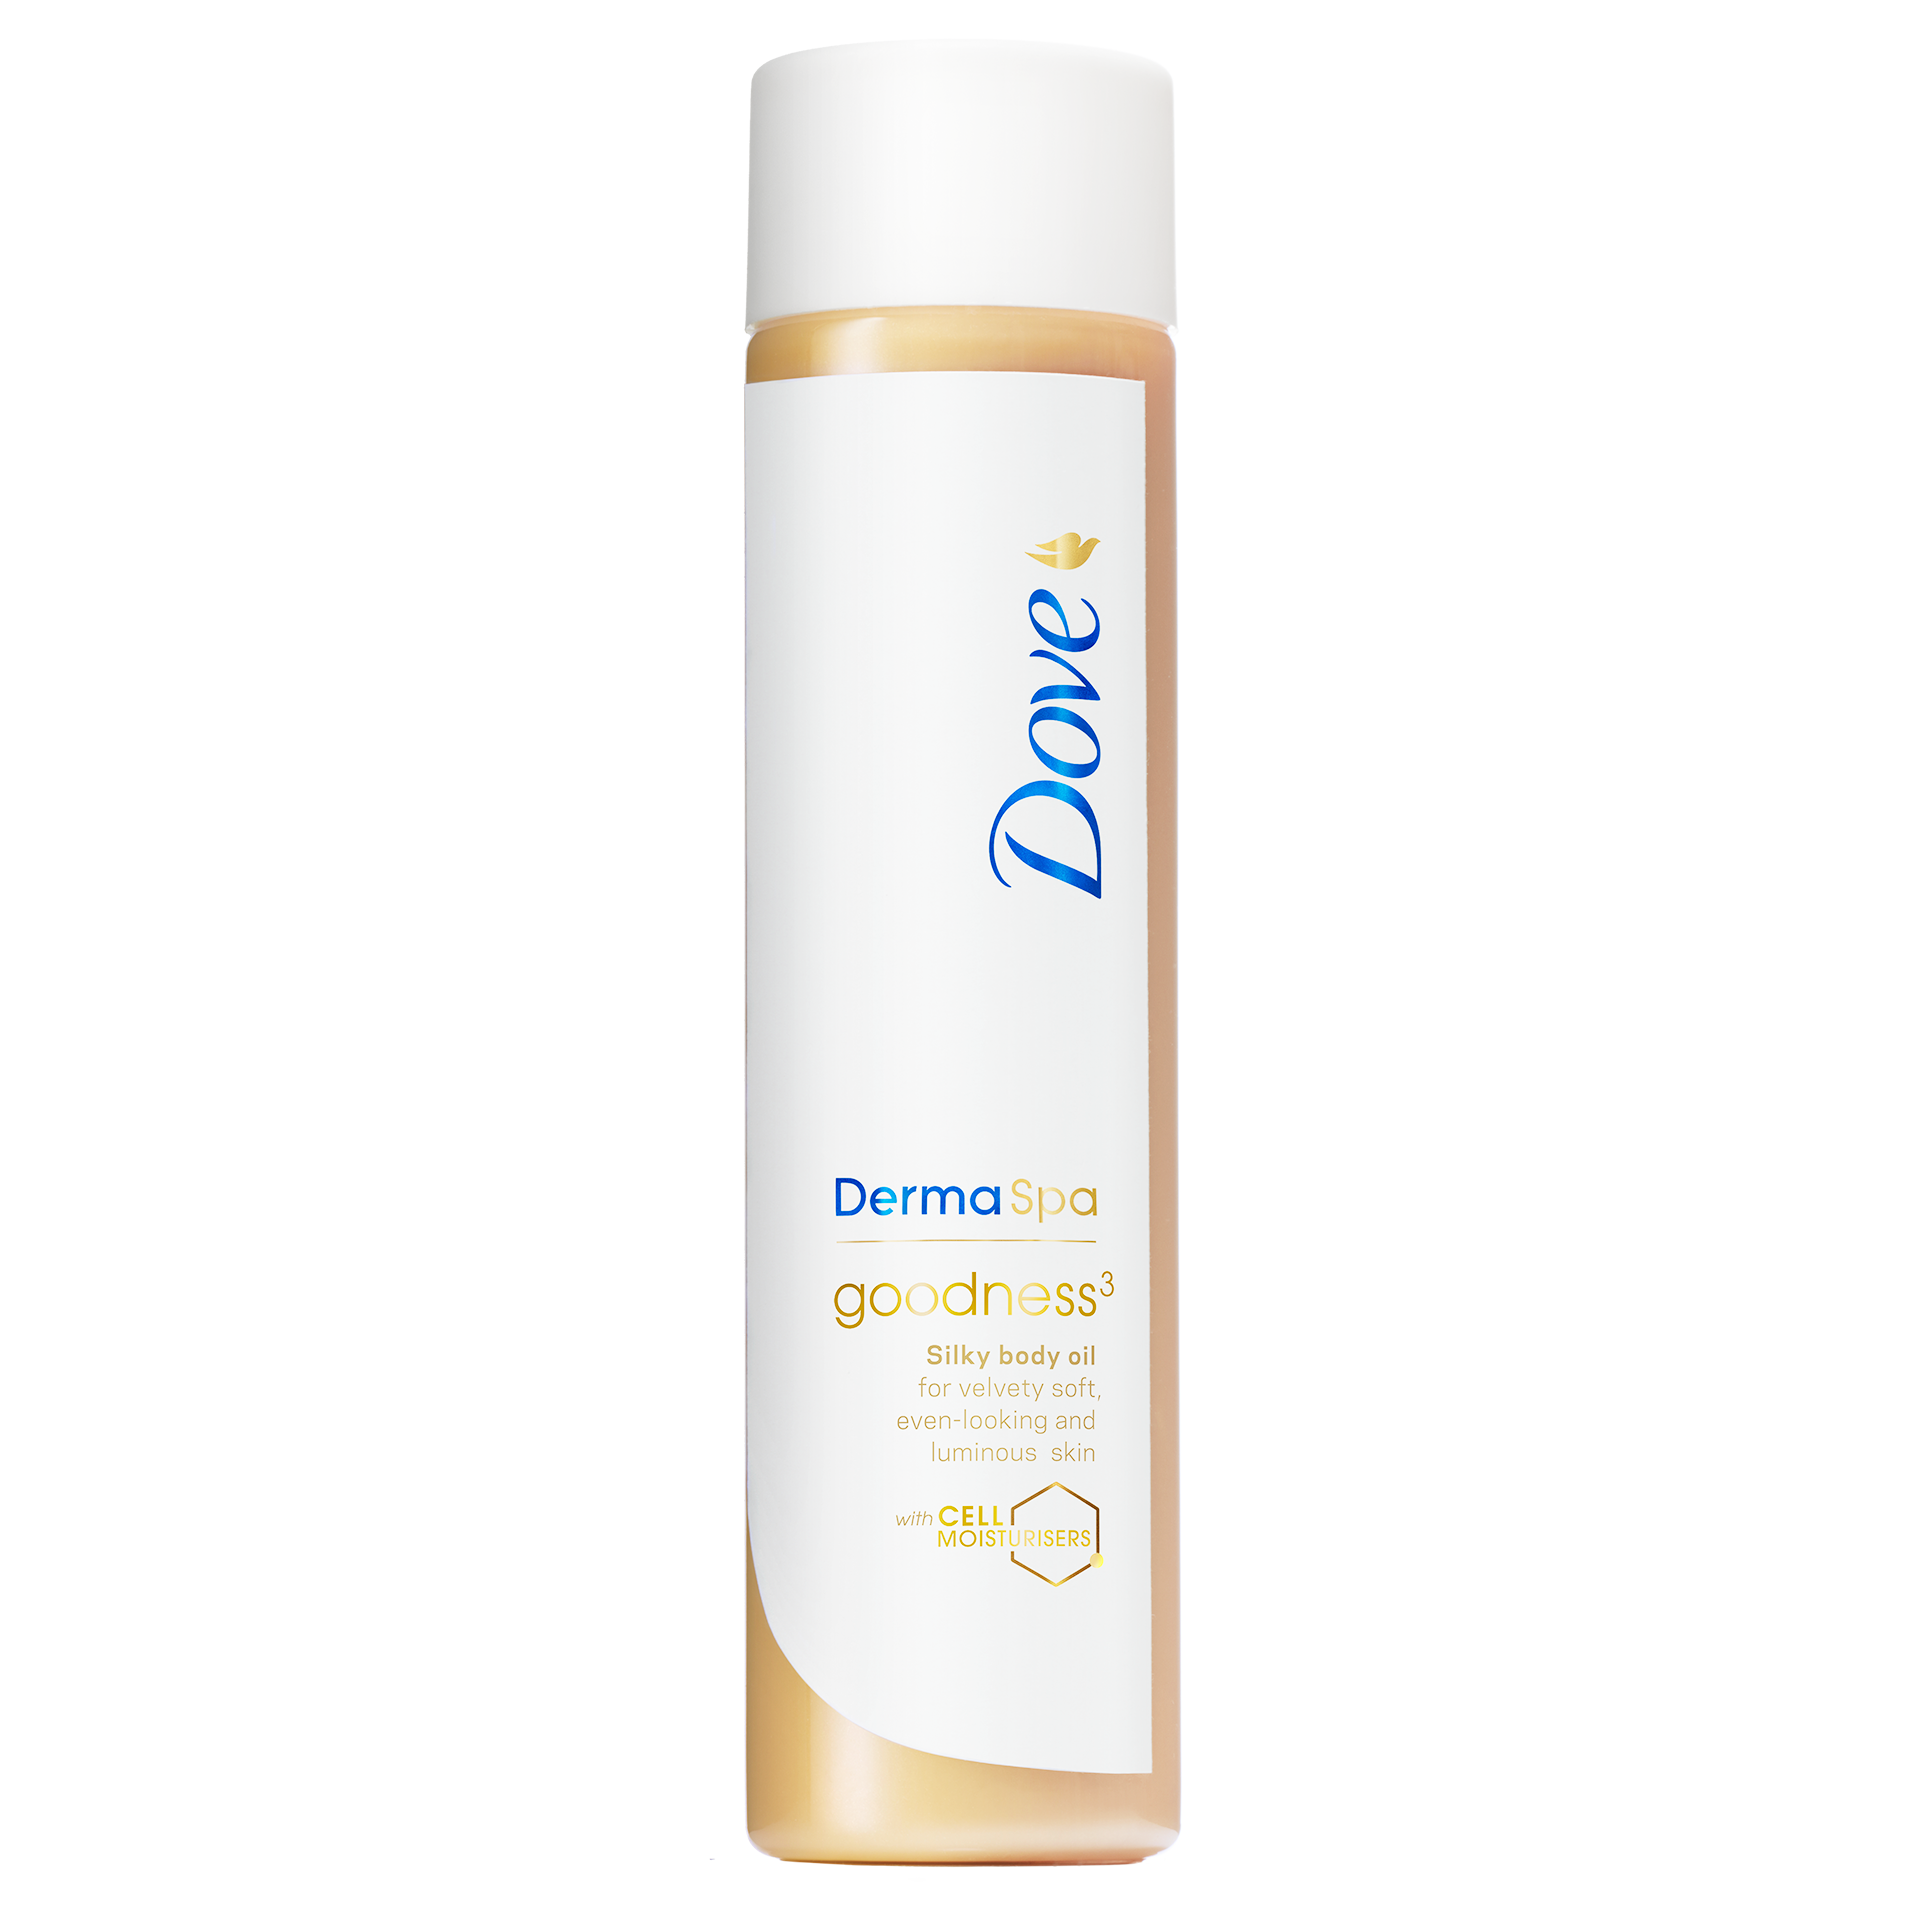 Dove Dermaspa Goodness 179 Body Oil